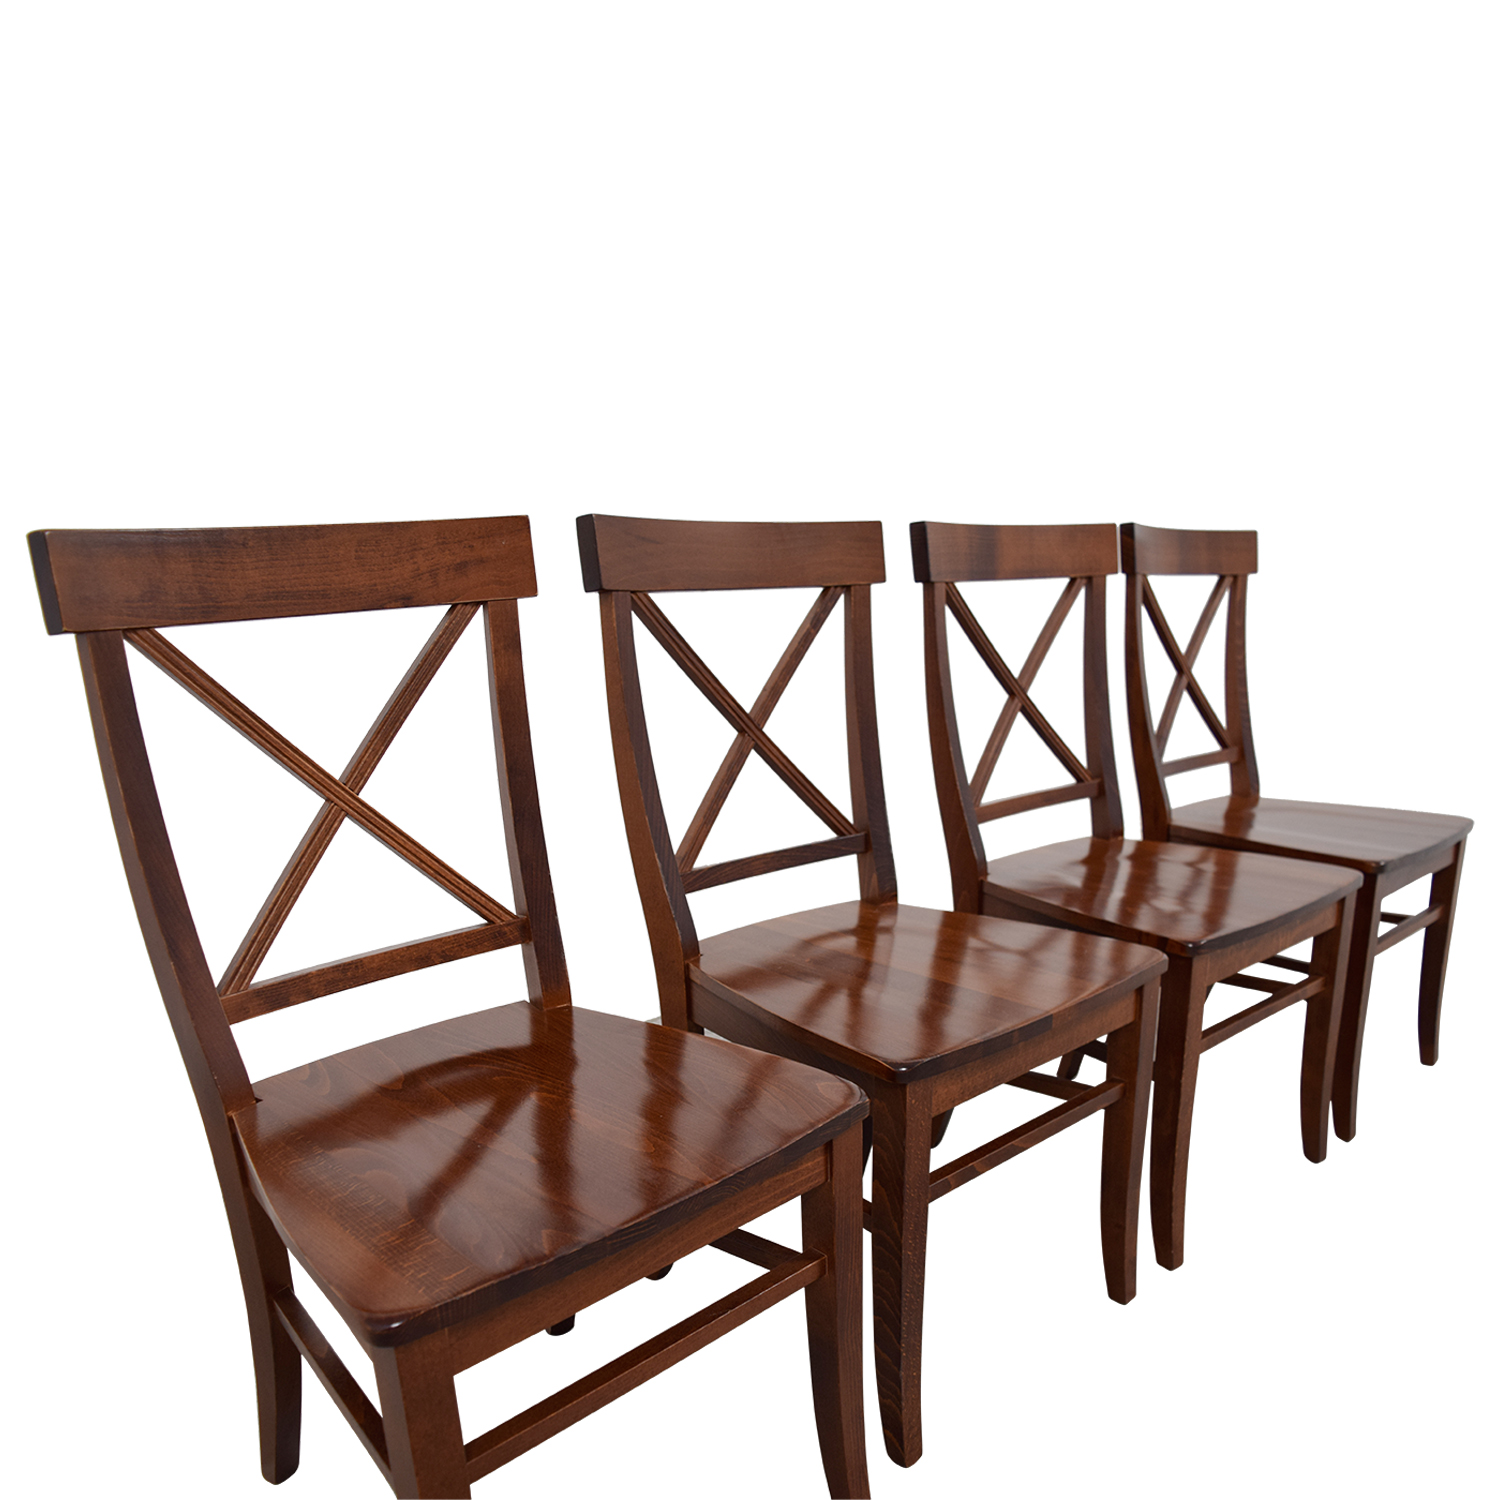 Delicieux 84% OFF   Pottery Barn Pottery Barn Aaron Wood Dining Chairs / Chairs